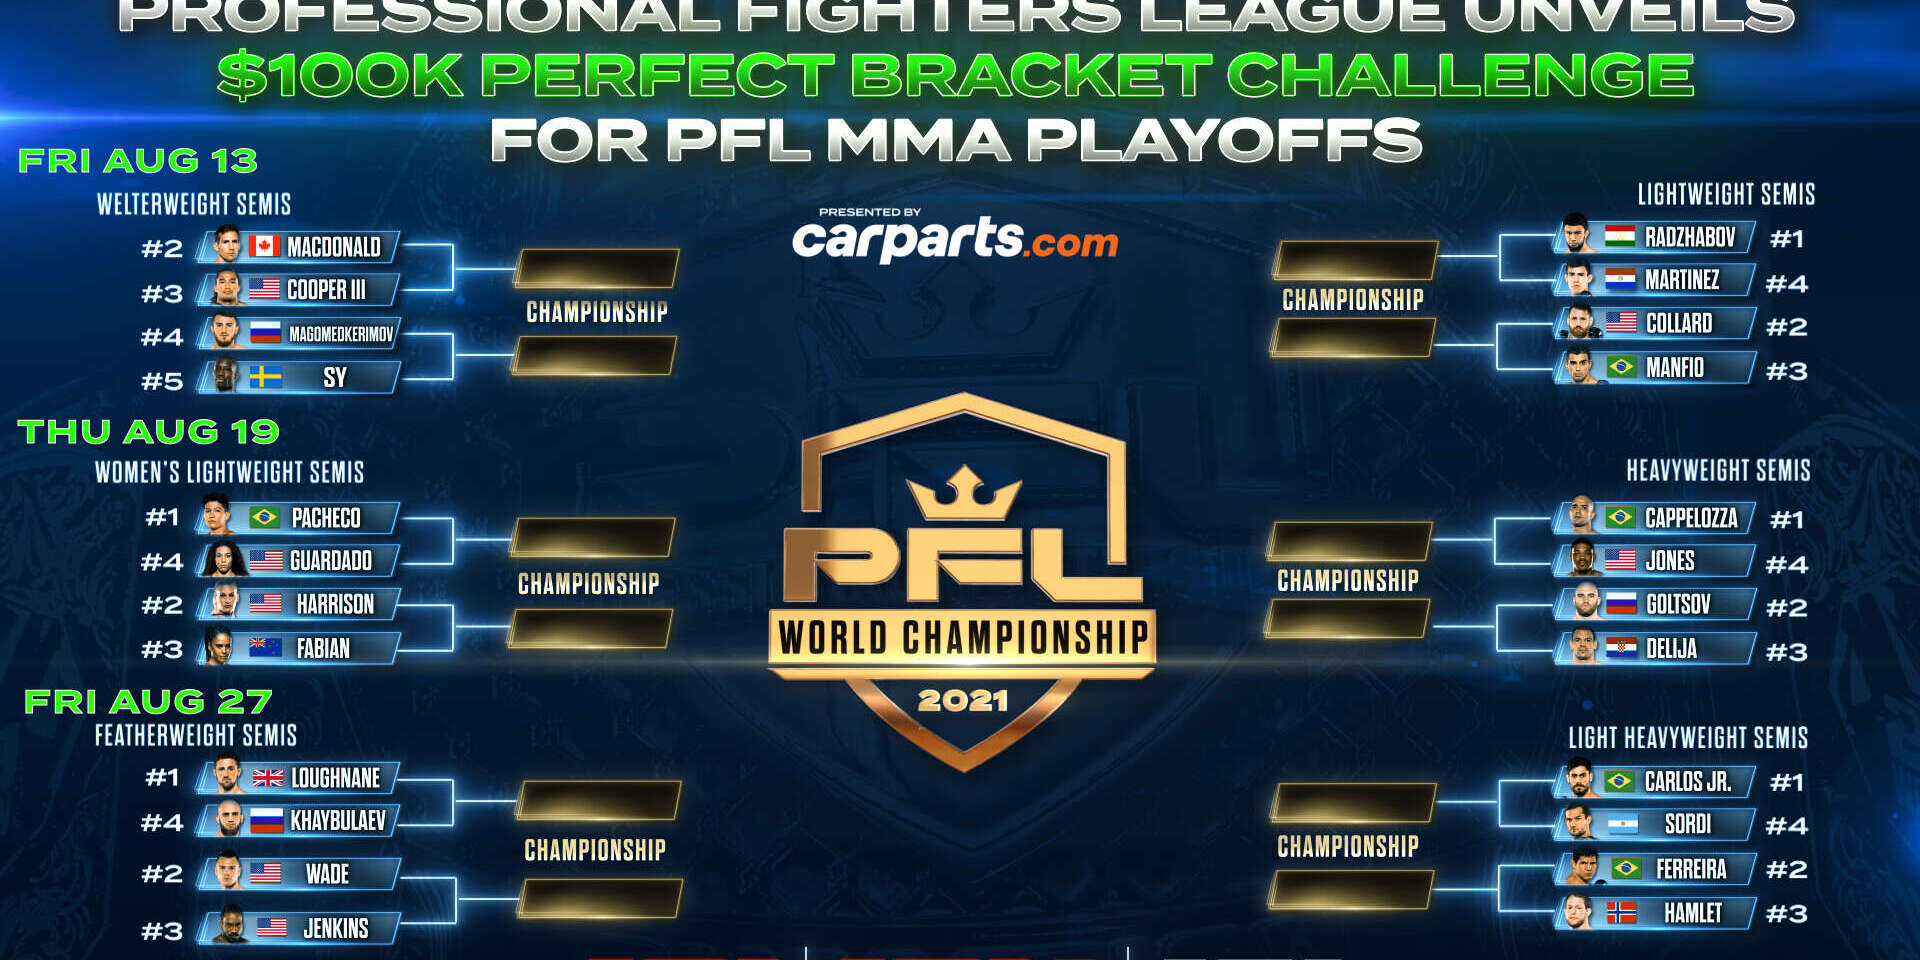 PROFESSIONAL FIGHTERS LEAGUE LAUNCHES THE FIRST-EVER PFL POSTSEASON $100K PERFECT BRACKET CHALLENGE ON PFLMMA.COM PRESENTED BY CARPARTS.COM